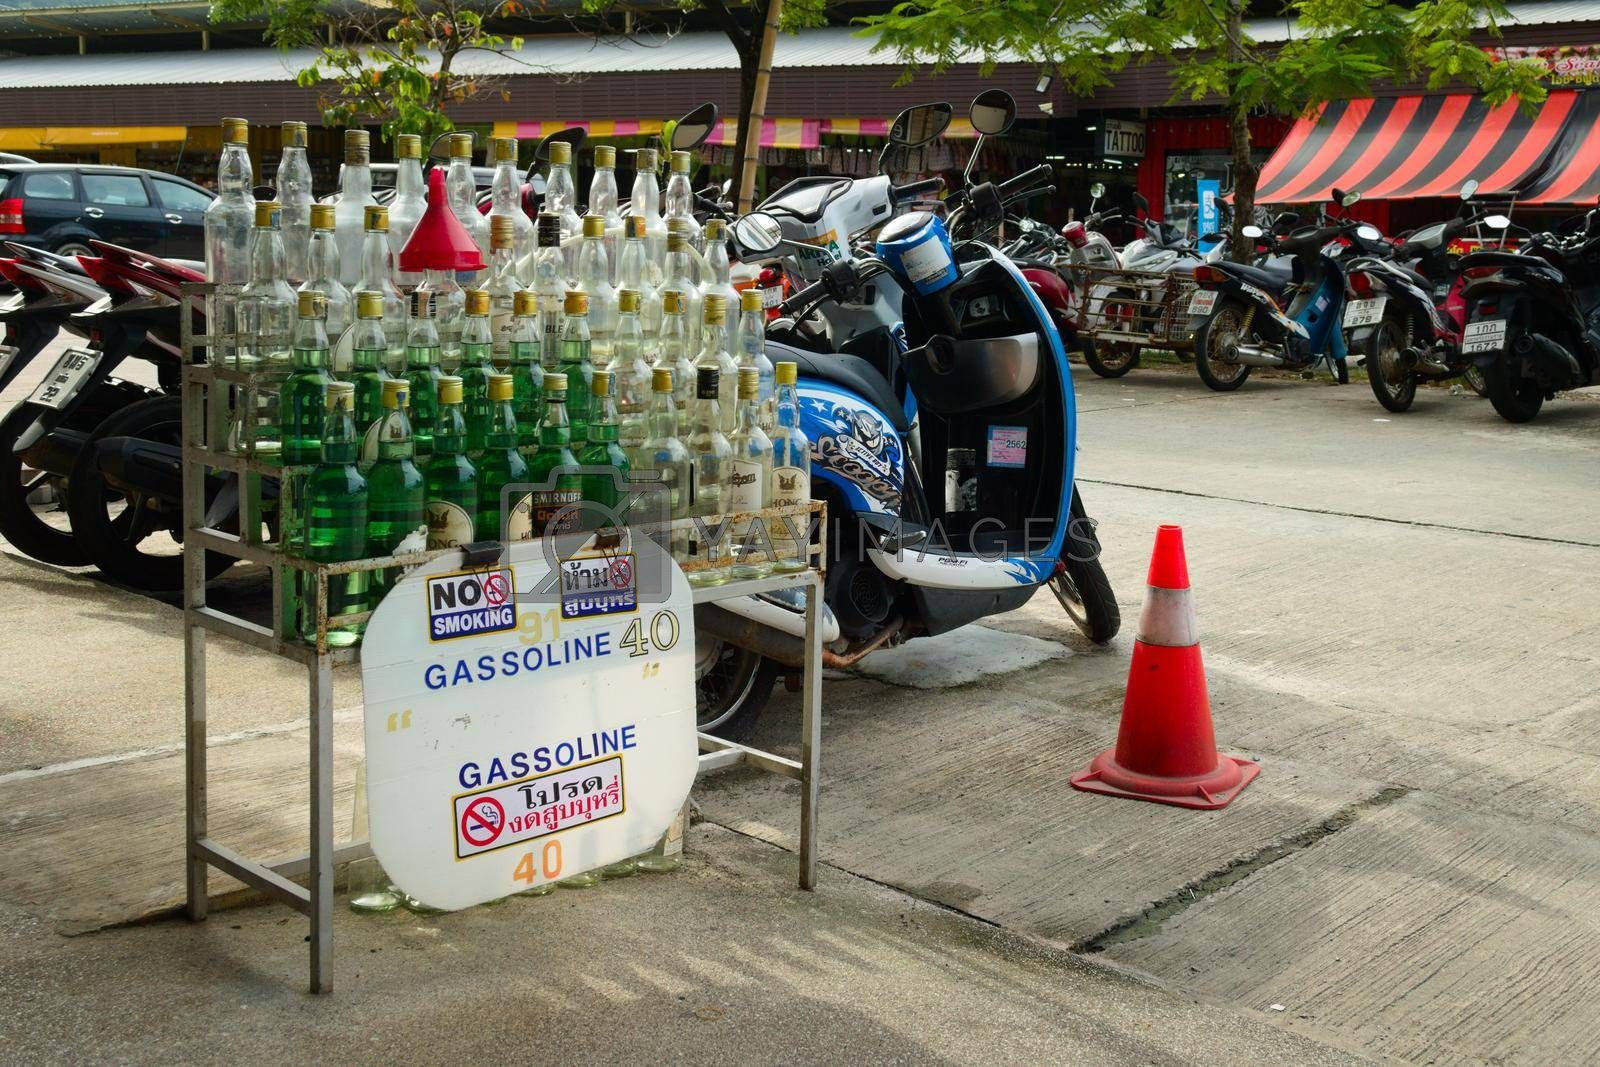 Royalty free image of 2019-11-05 / Phuket, Thailand - Bottles of gasoline for sale in a motorcycle rental stand. by hernan_hyper